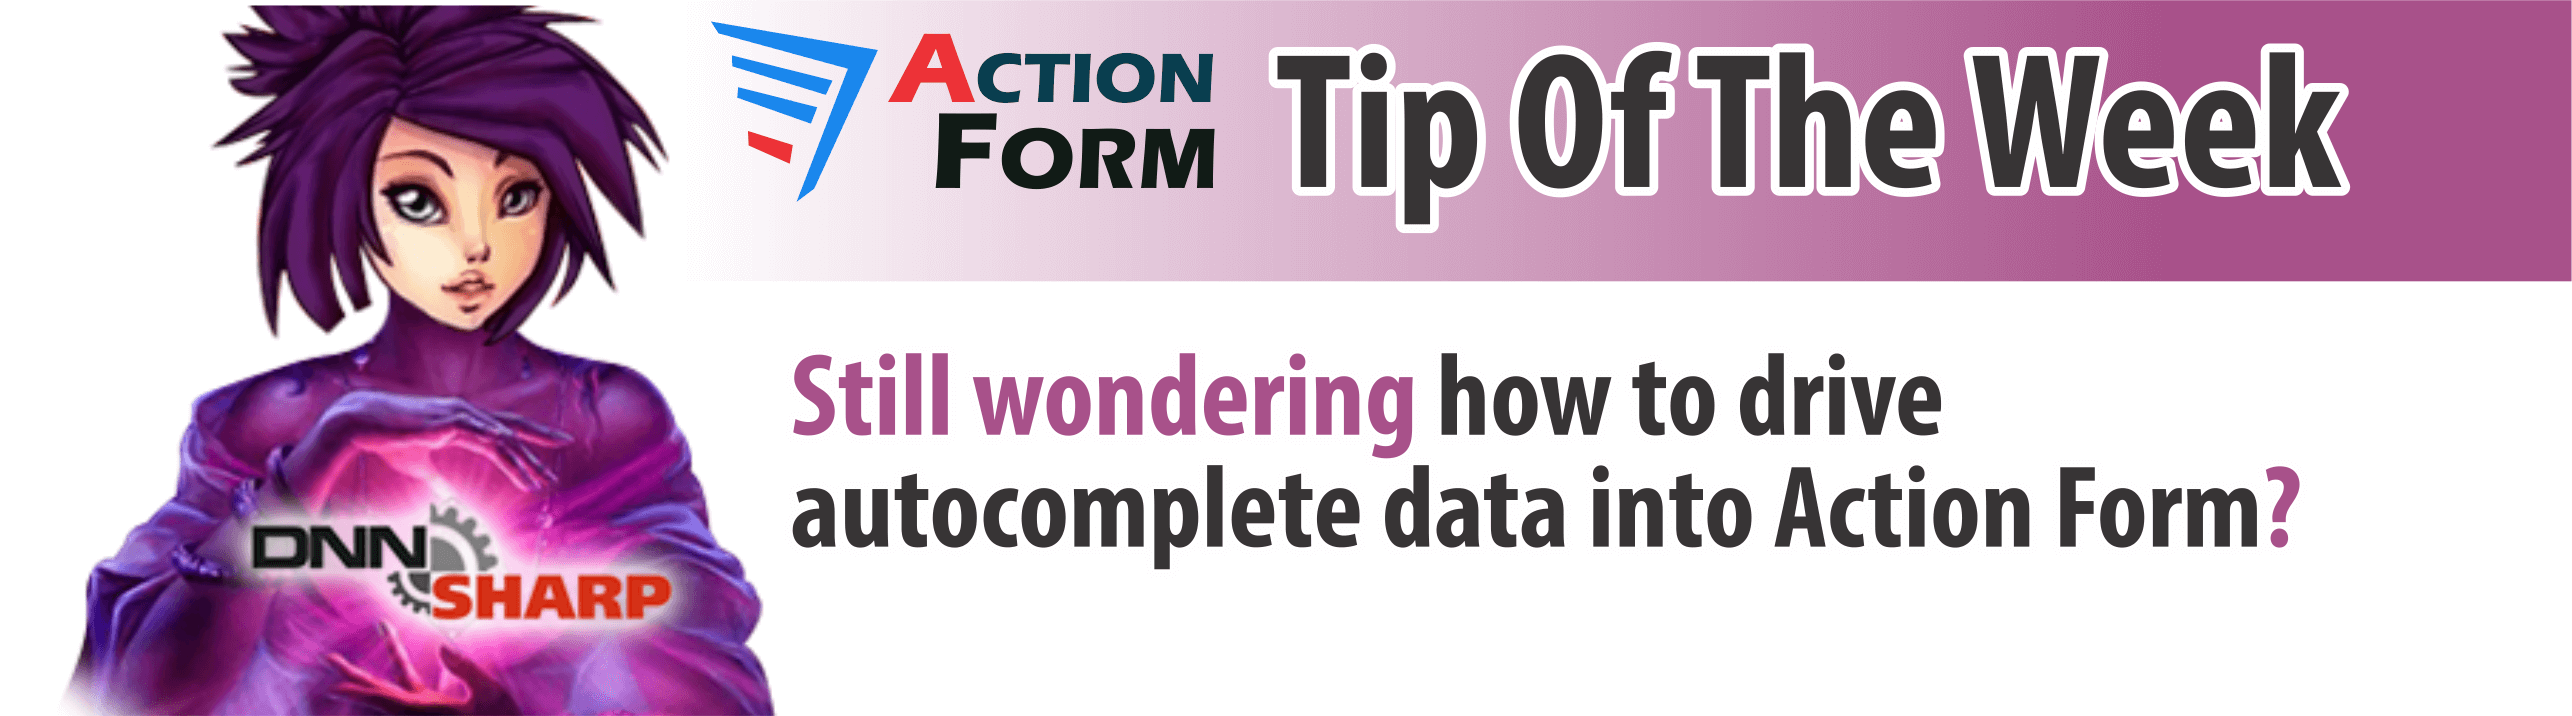 Drive Autocomplete Data Into Action Form